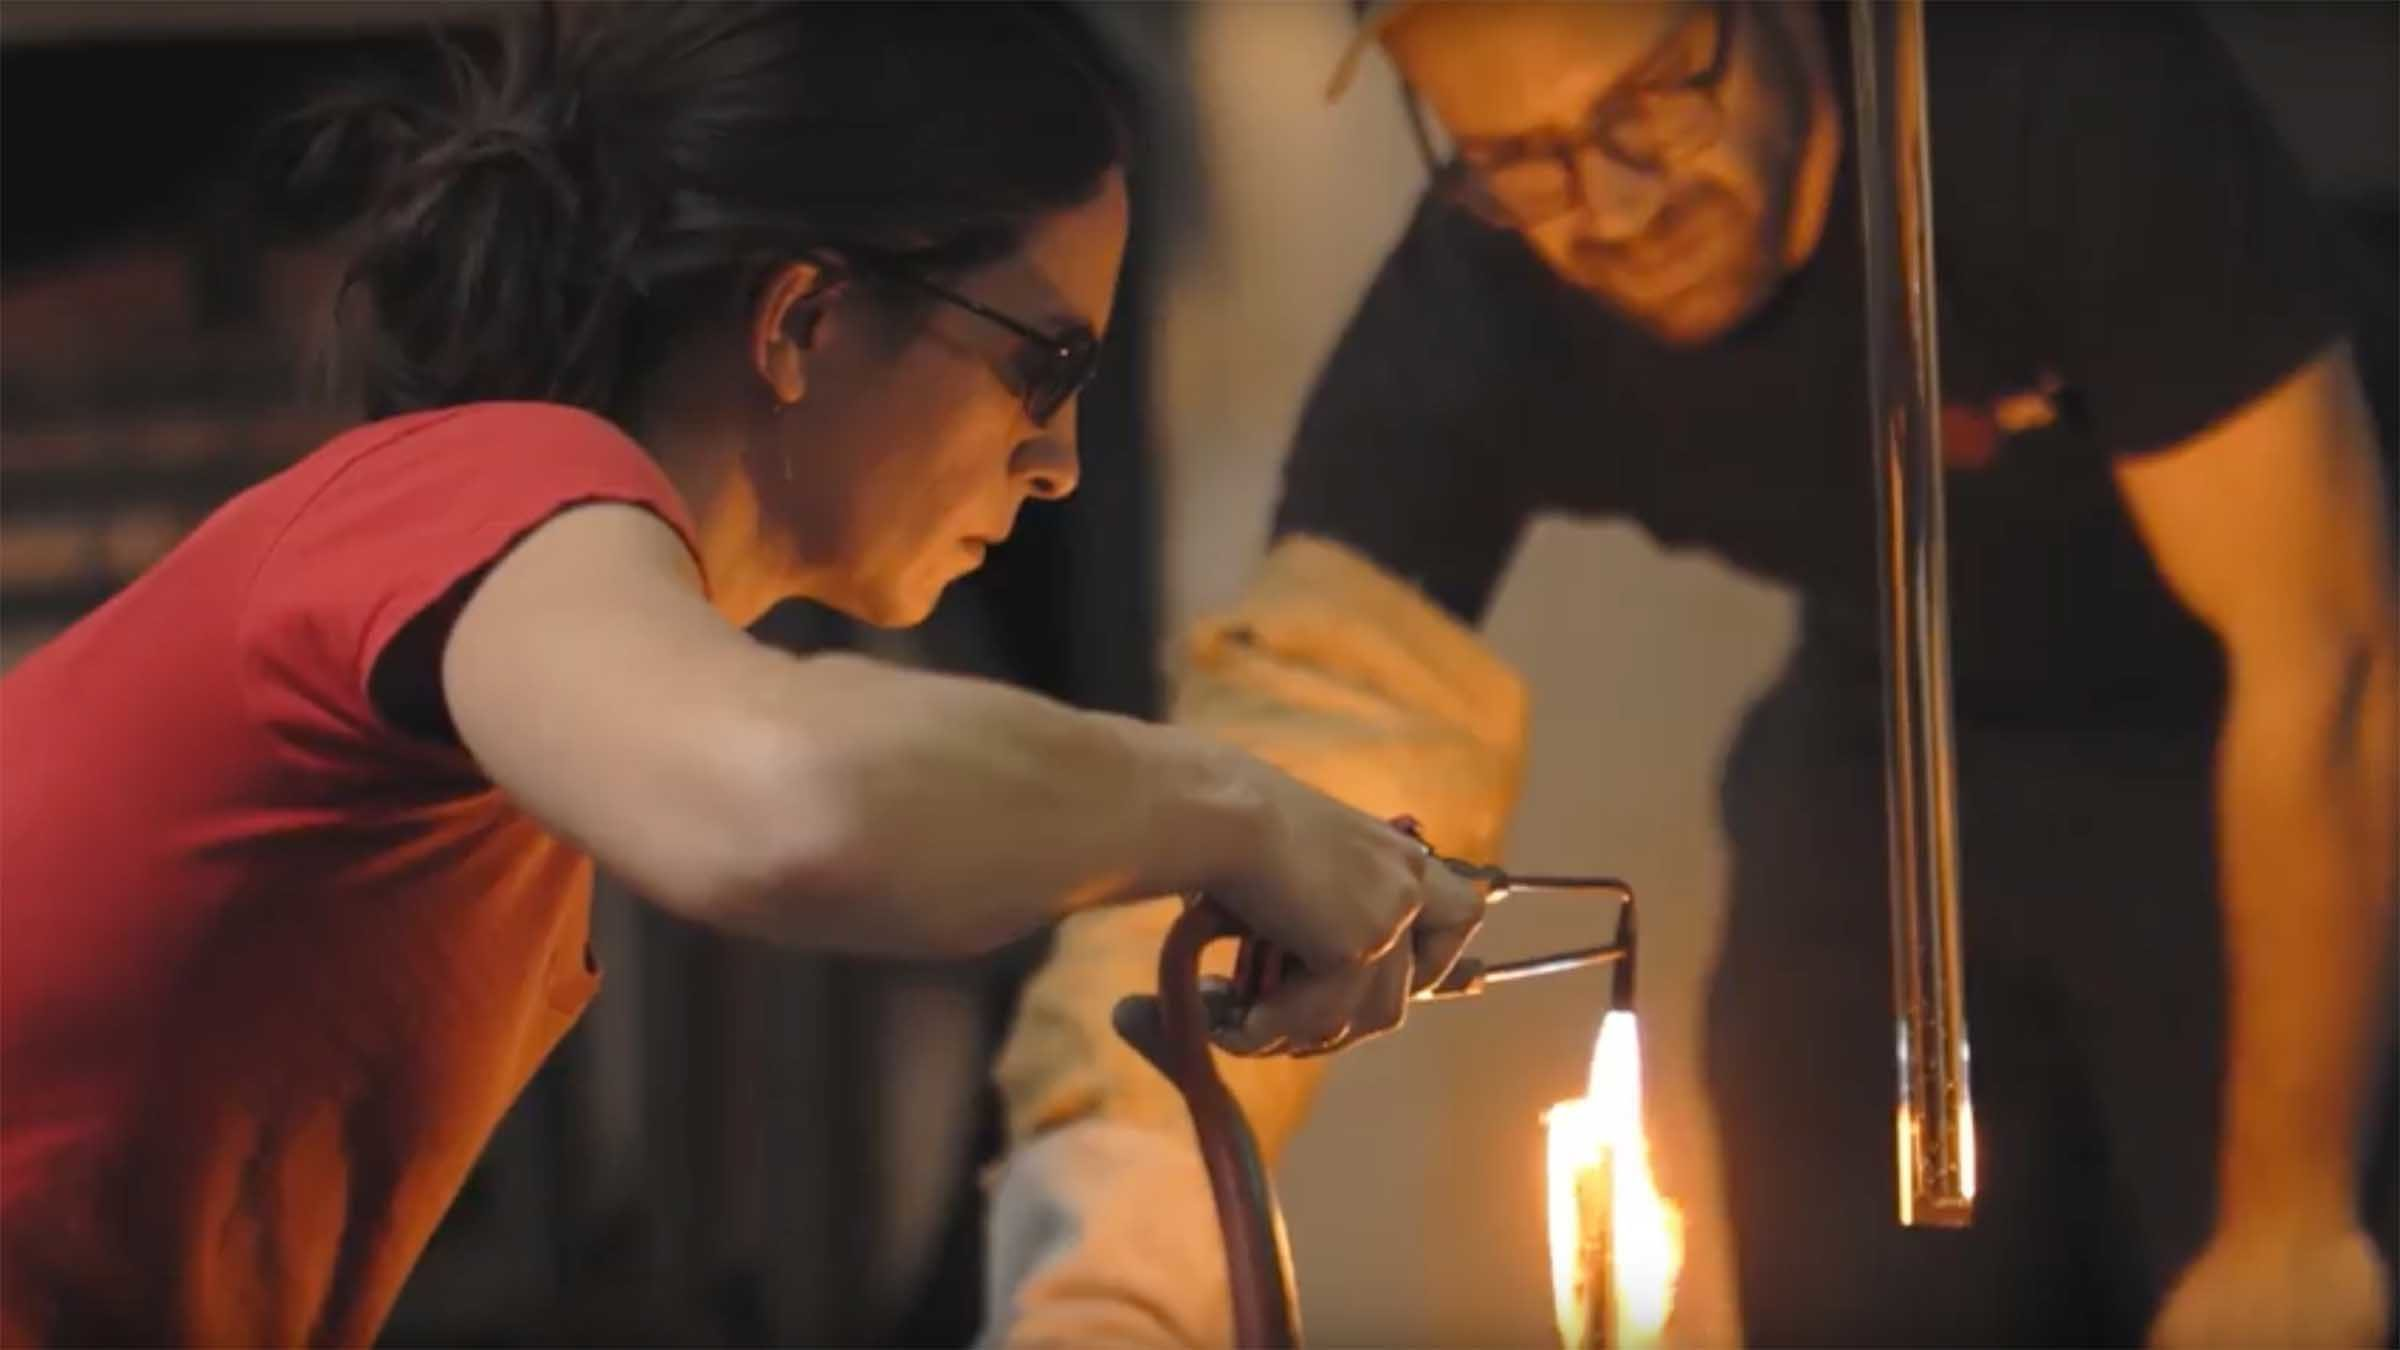 Carlyn Ray Designs Glassblowing and Assembly Image